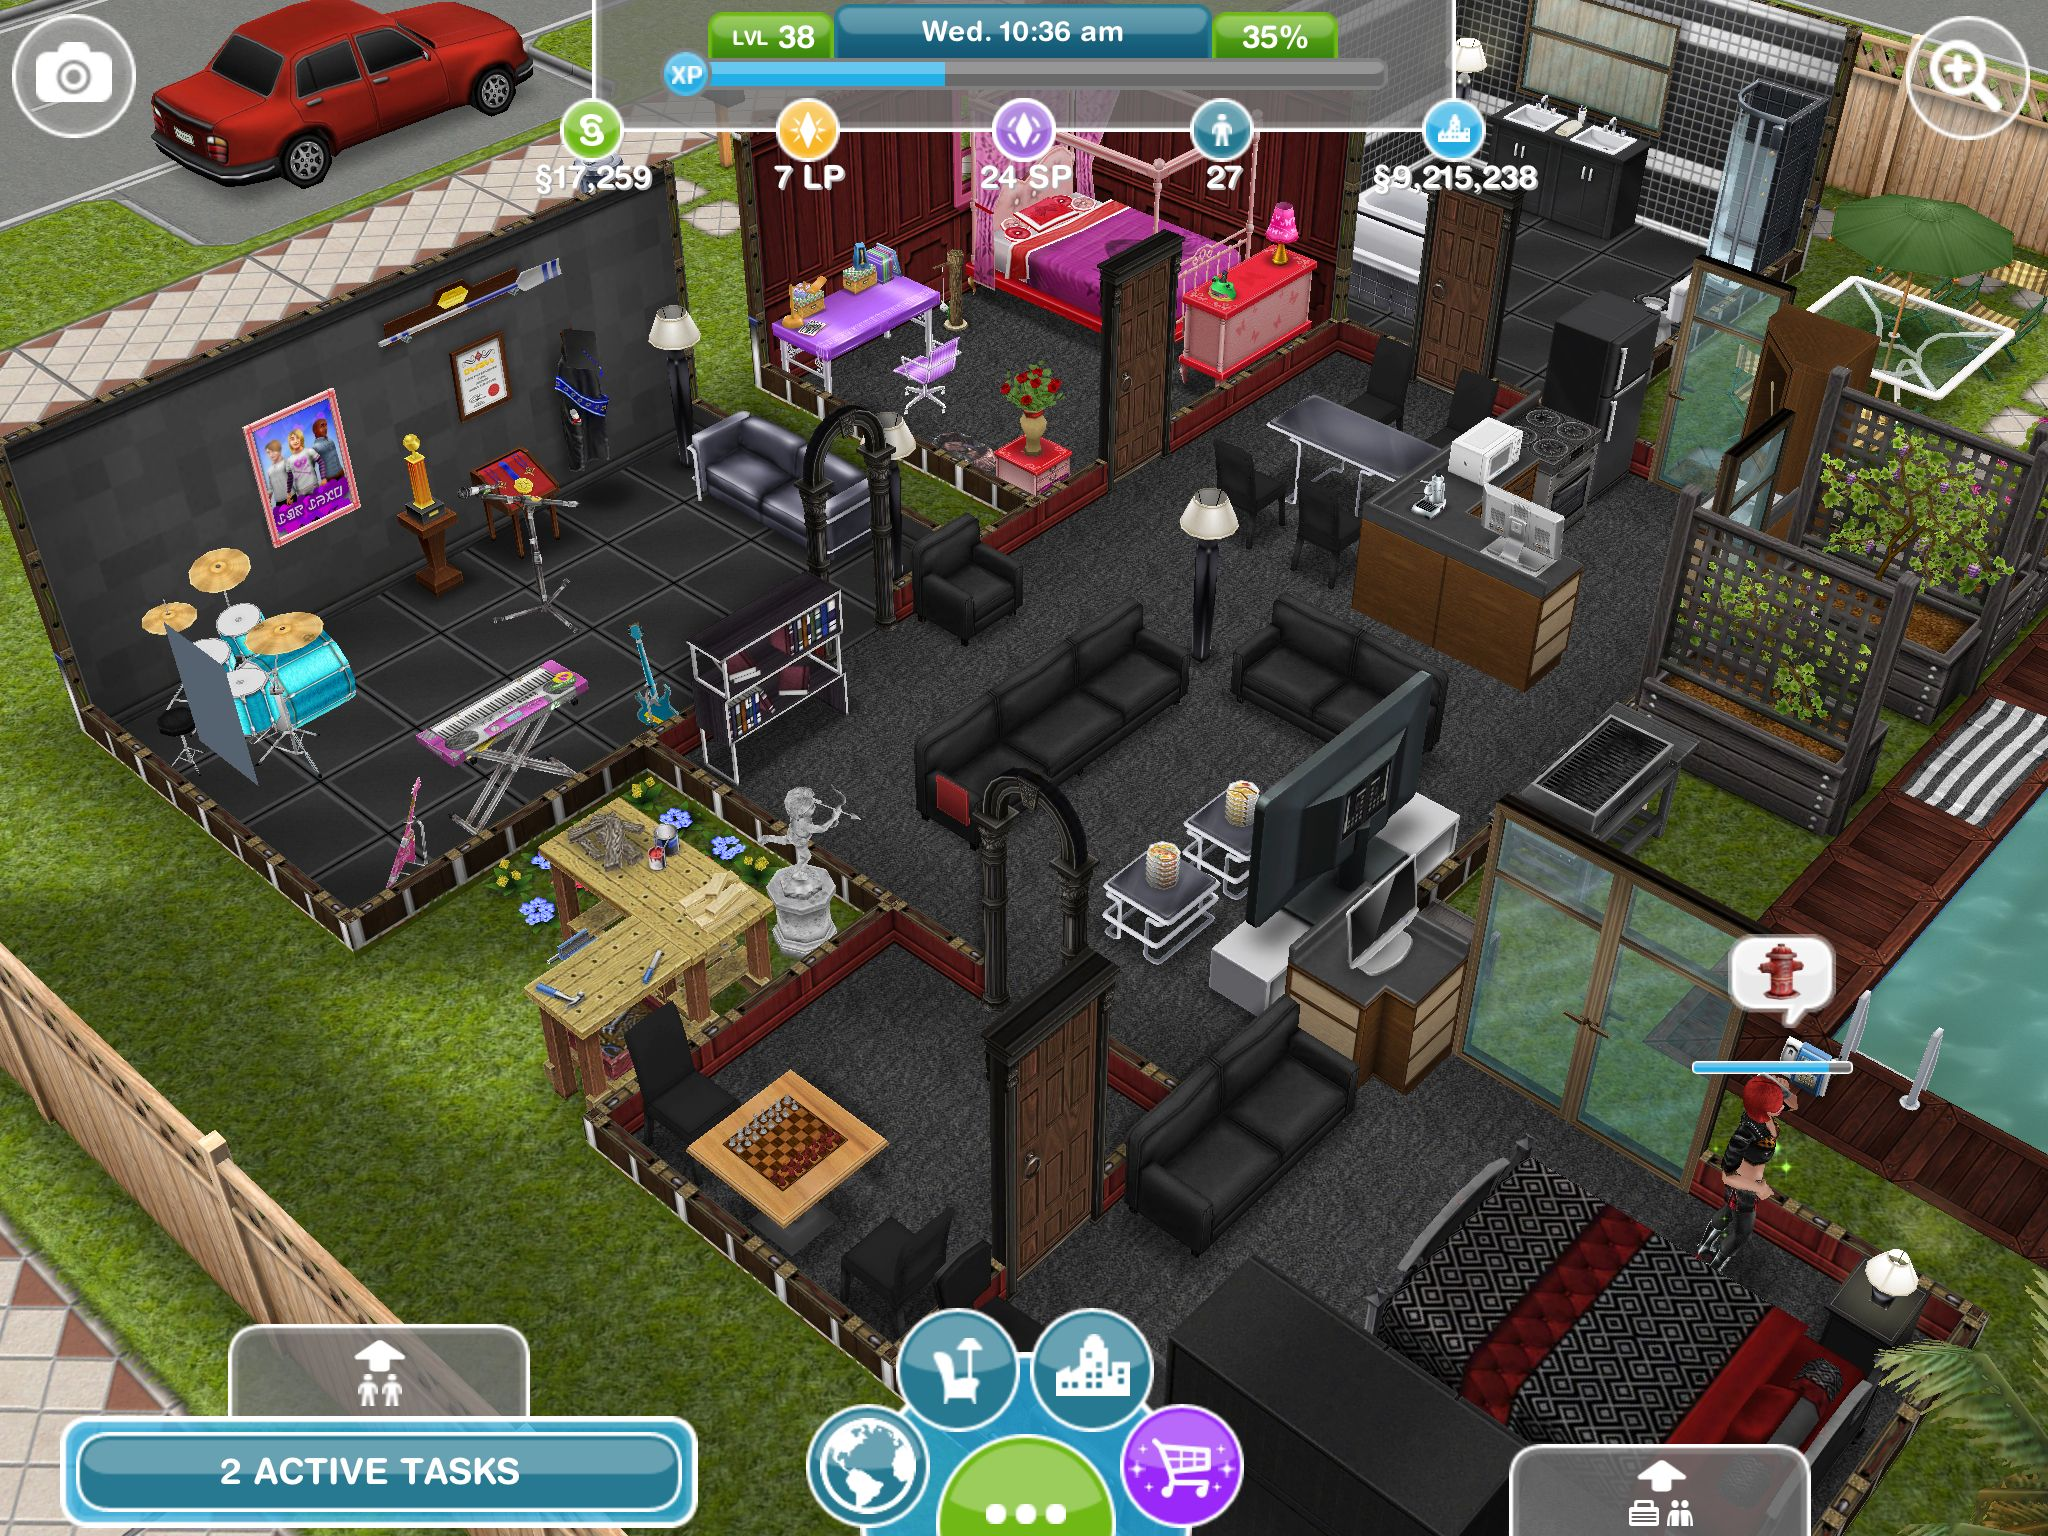 Sims freeplay | Sims Freeplay | Pinterest | Sims